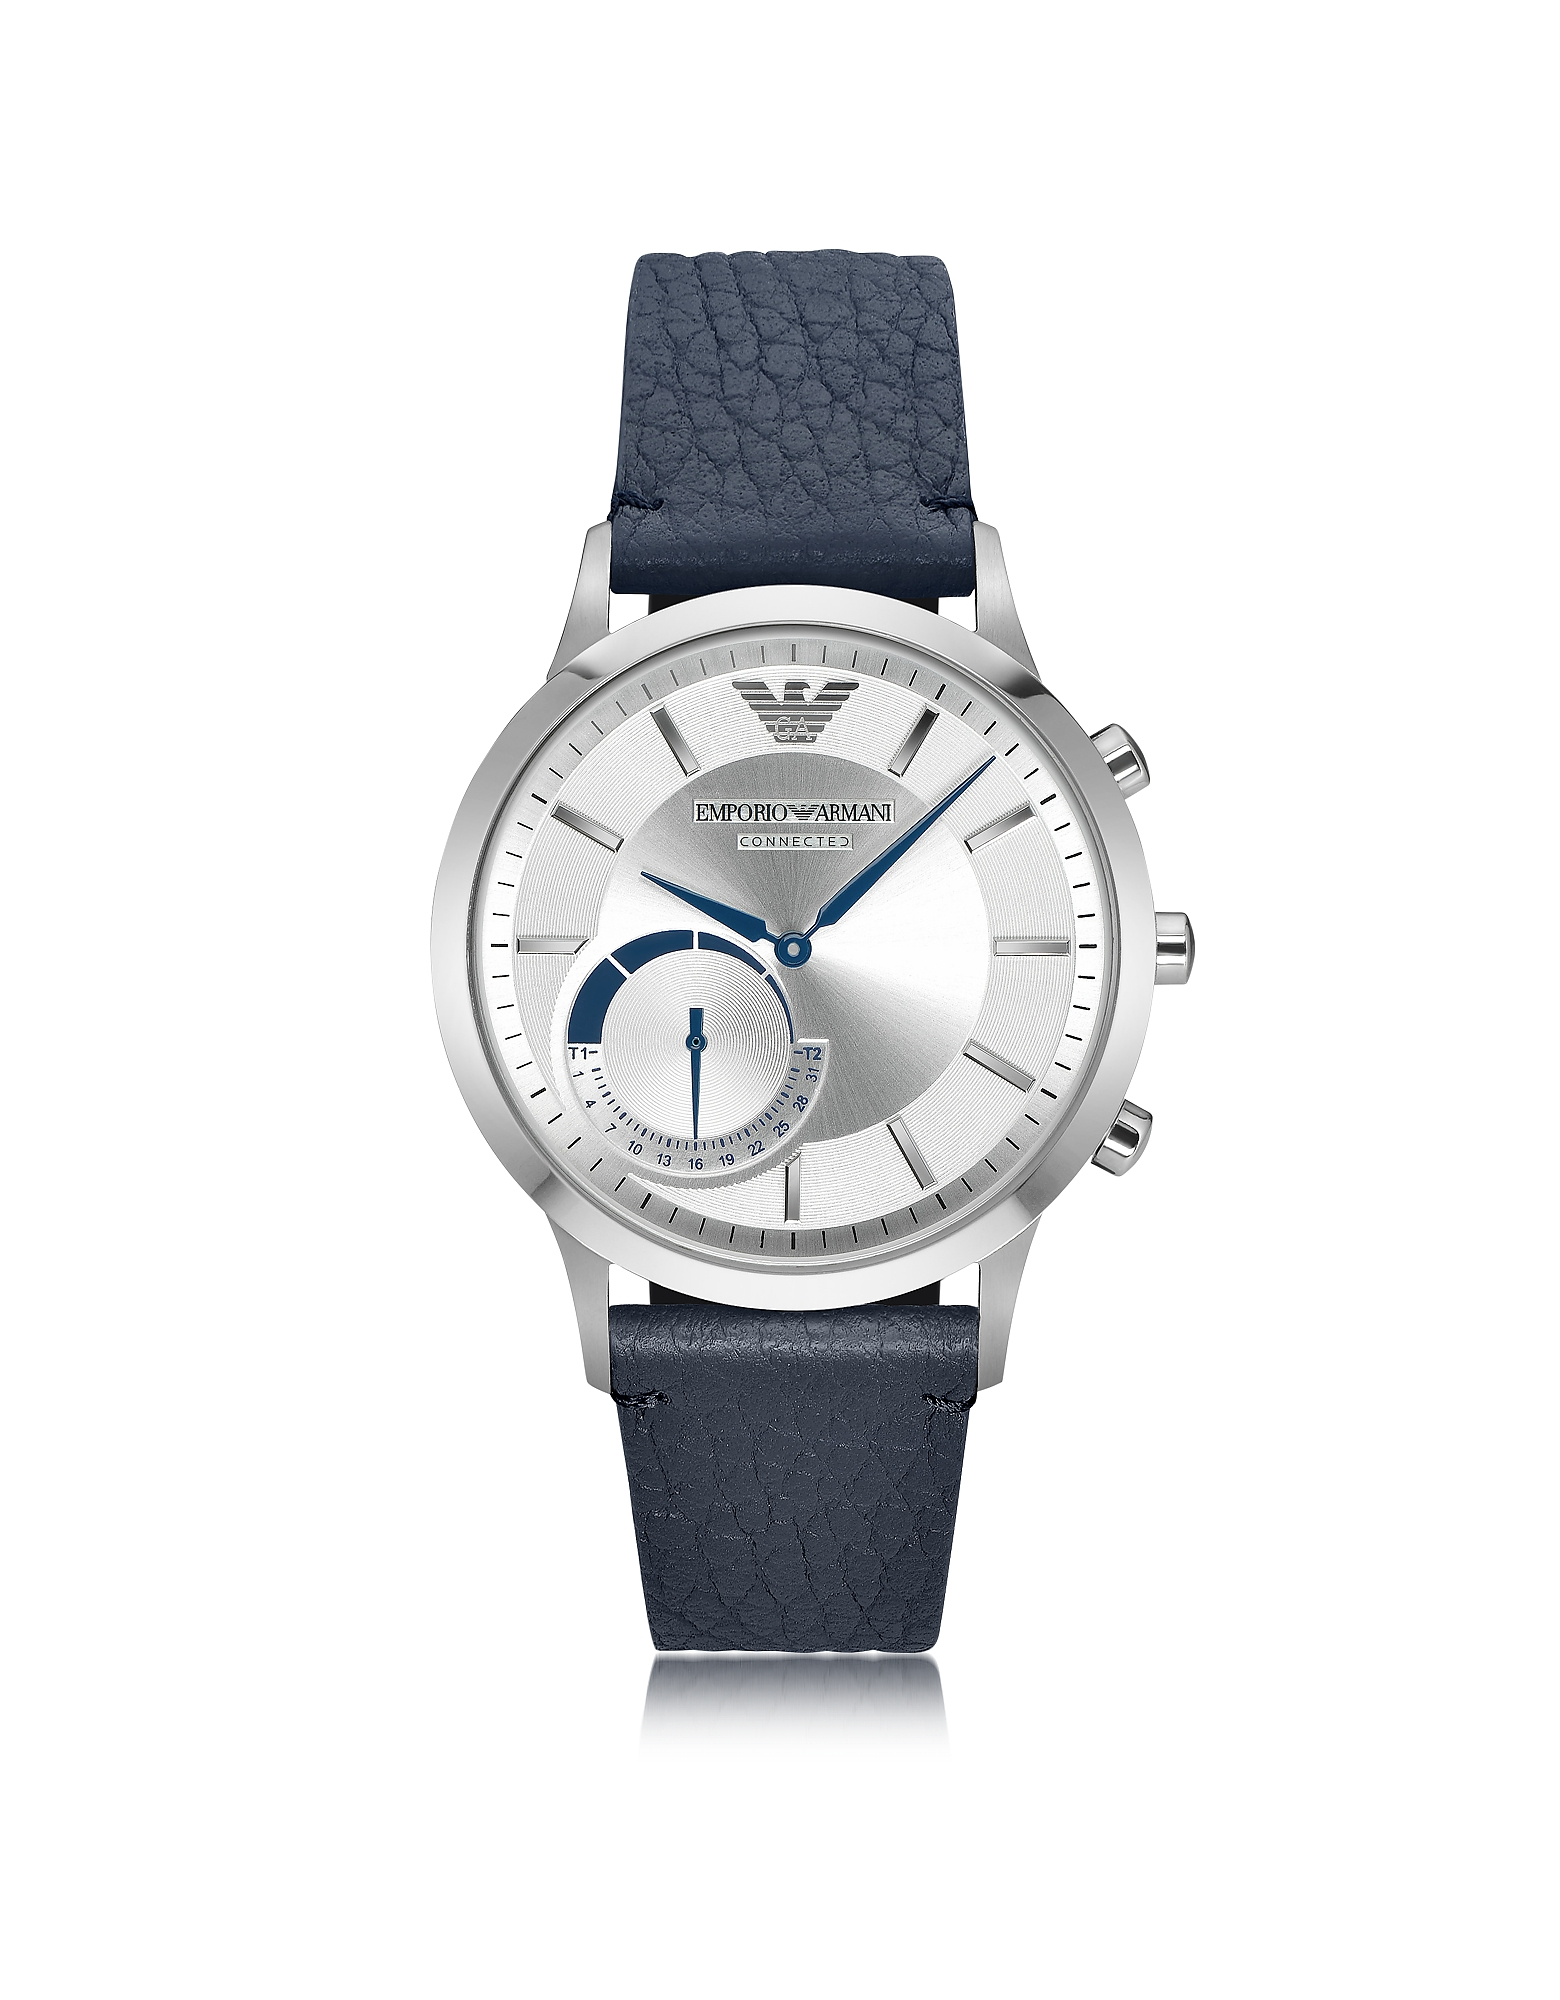 Emporio Armani Men's Watches, Connected Stainless Steel Hybrid Men's Smartwatch w/Blue Leather Strap